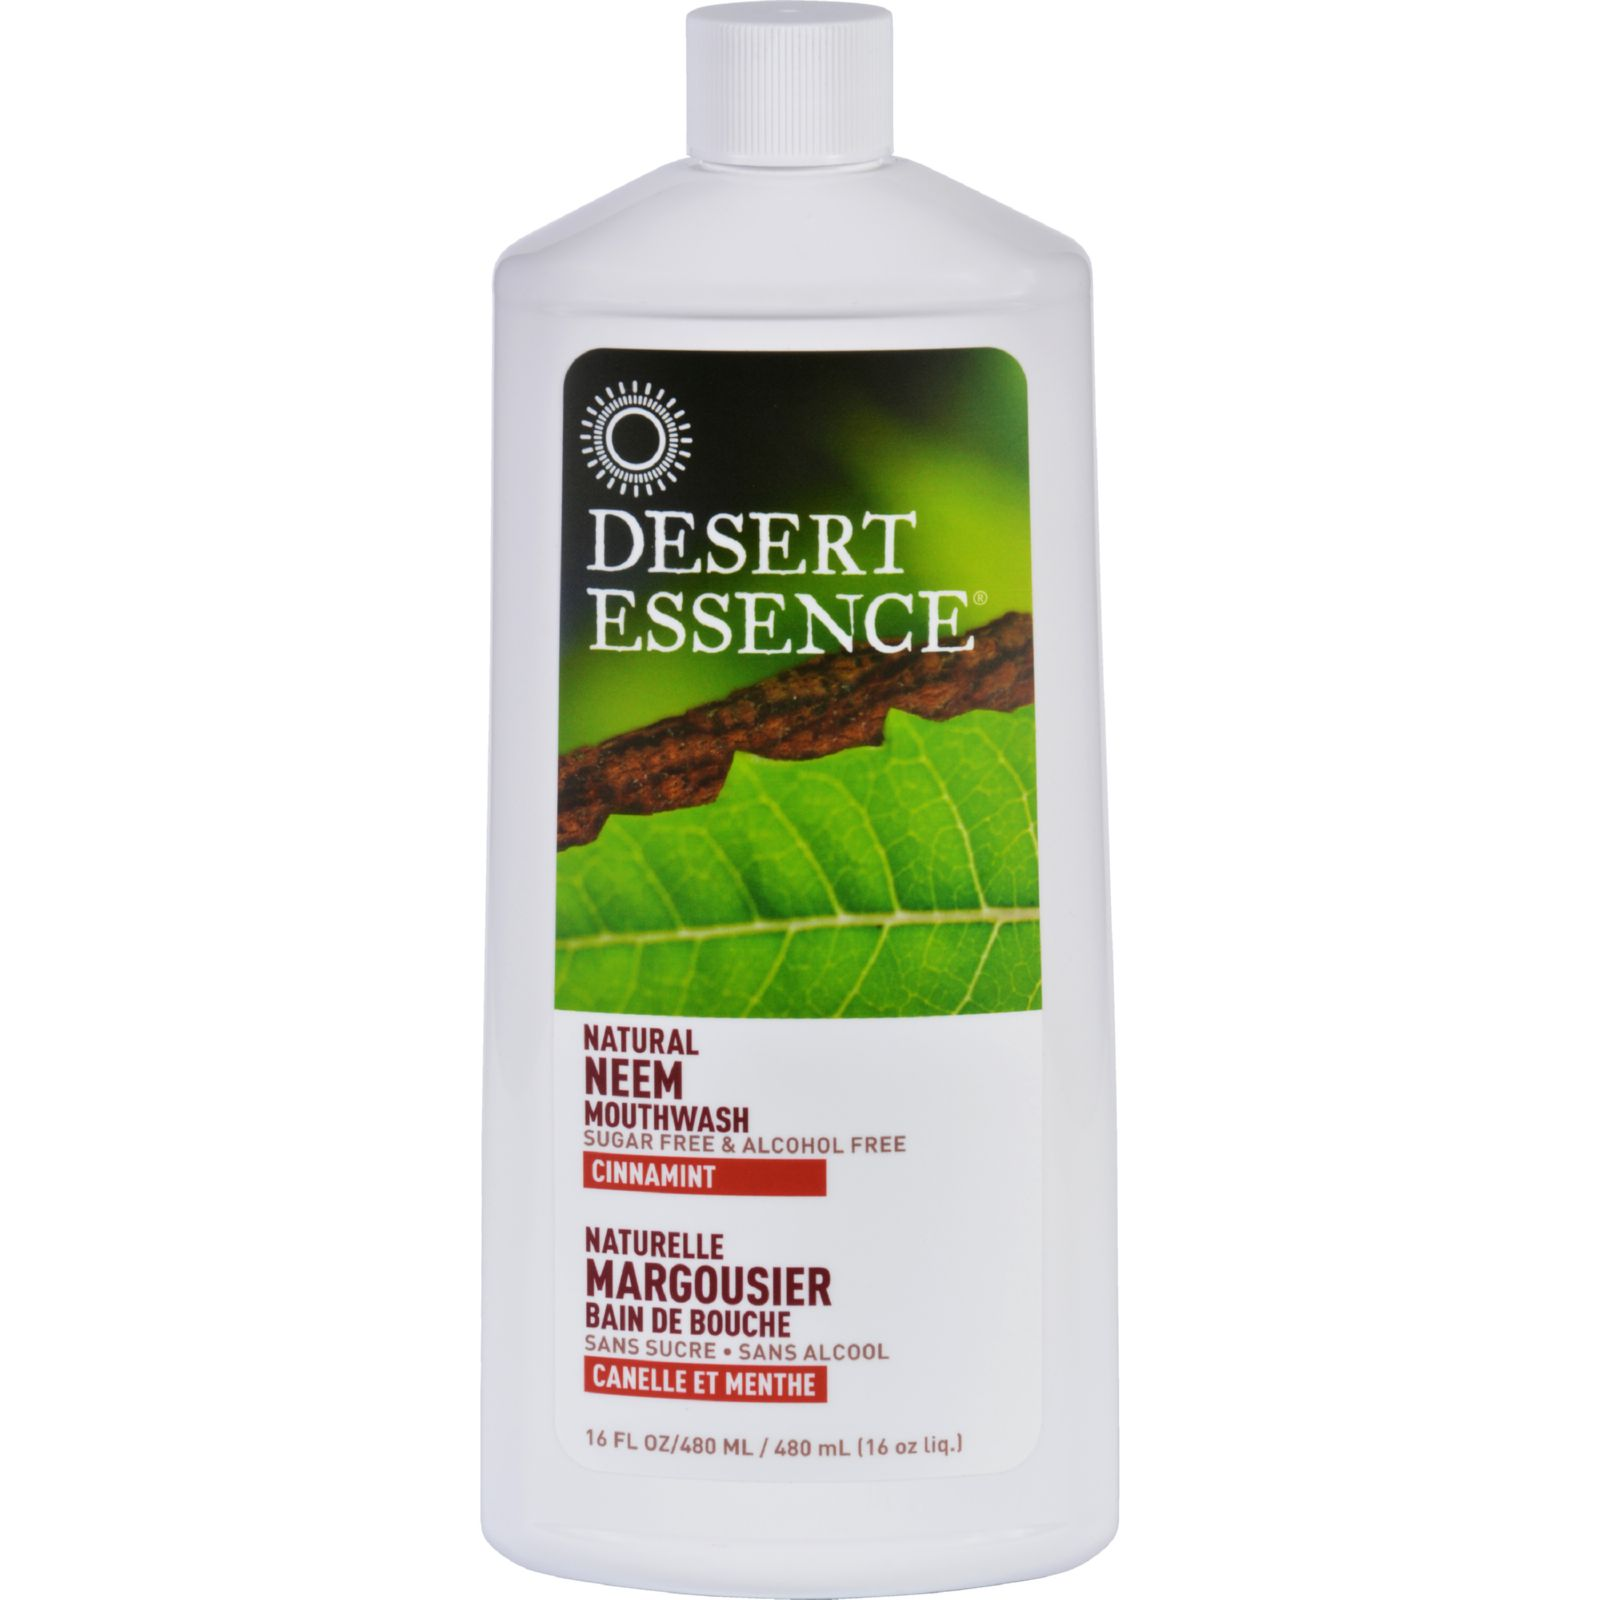 Desert Essence Mouthwash  Natural Neem  Cinnamint  16 oz